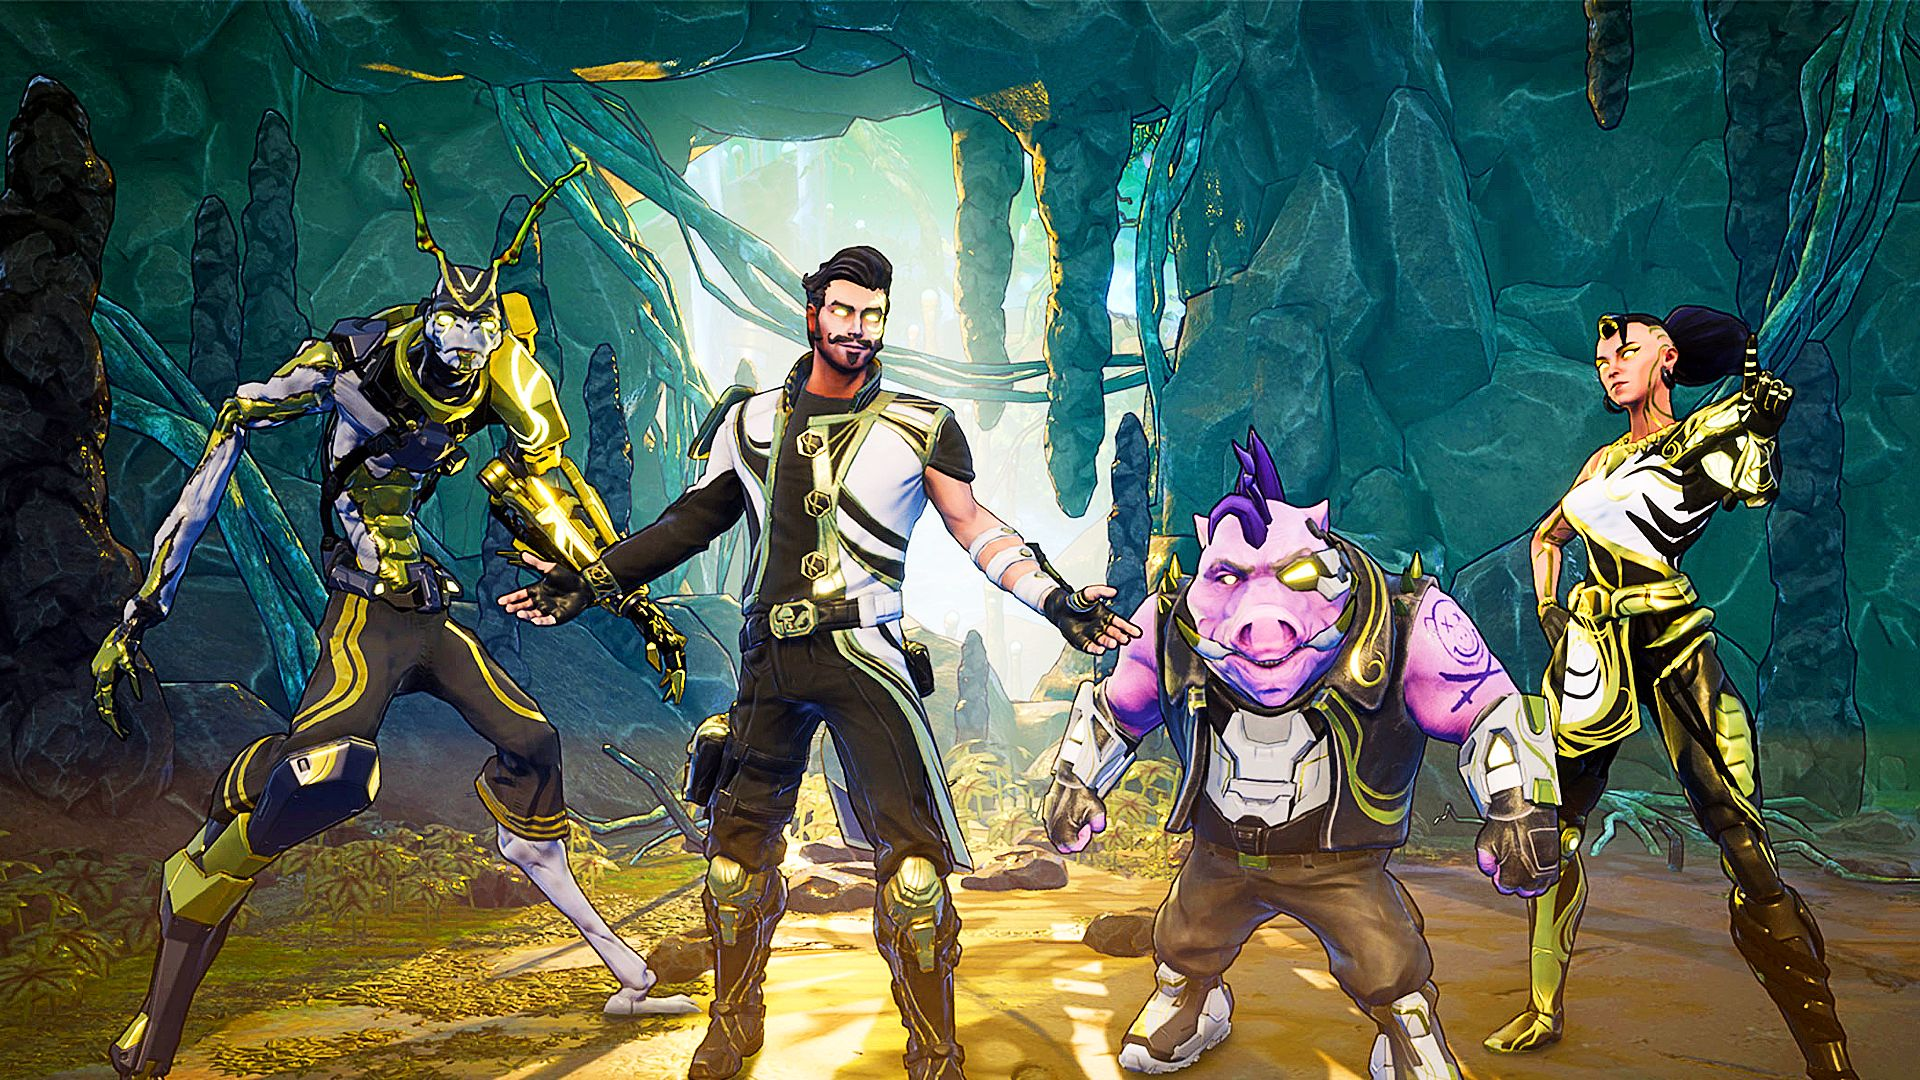 Space Punks is a Borderlands-style co-op spin on Helldivers